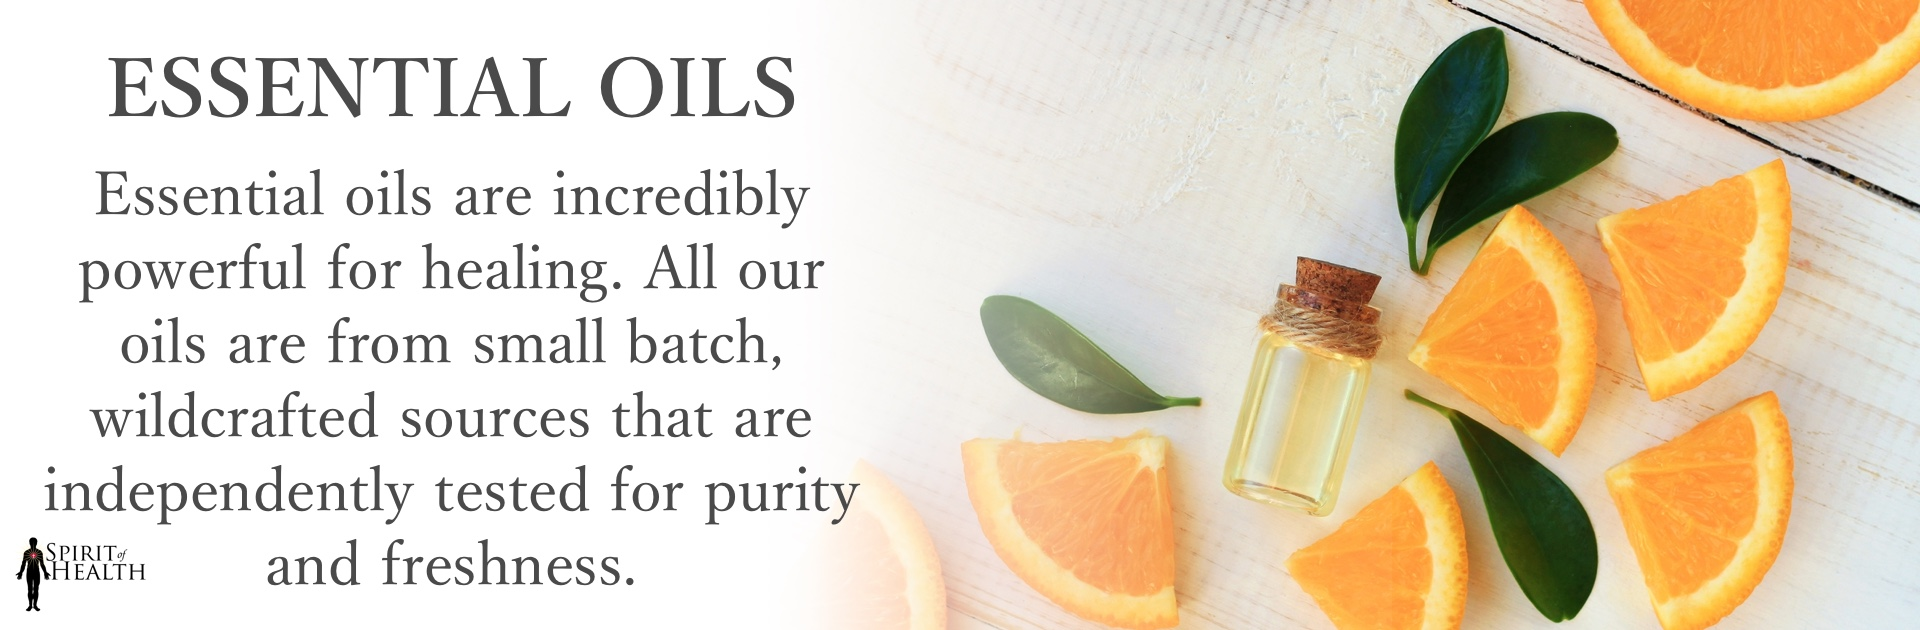 essential-oils-.jpg